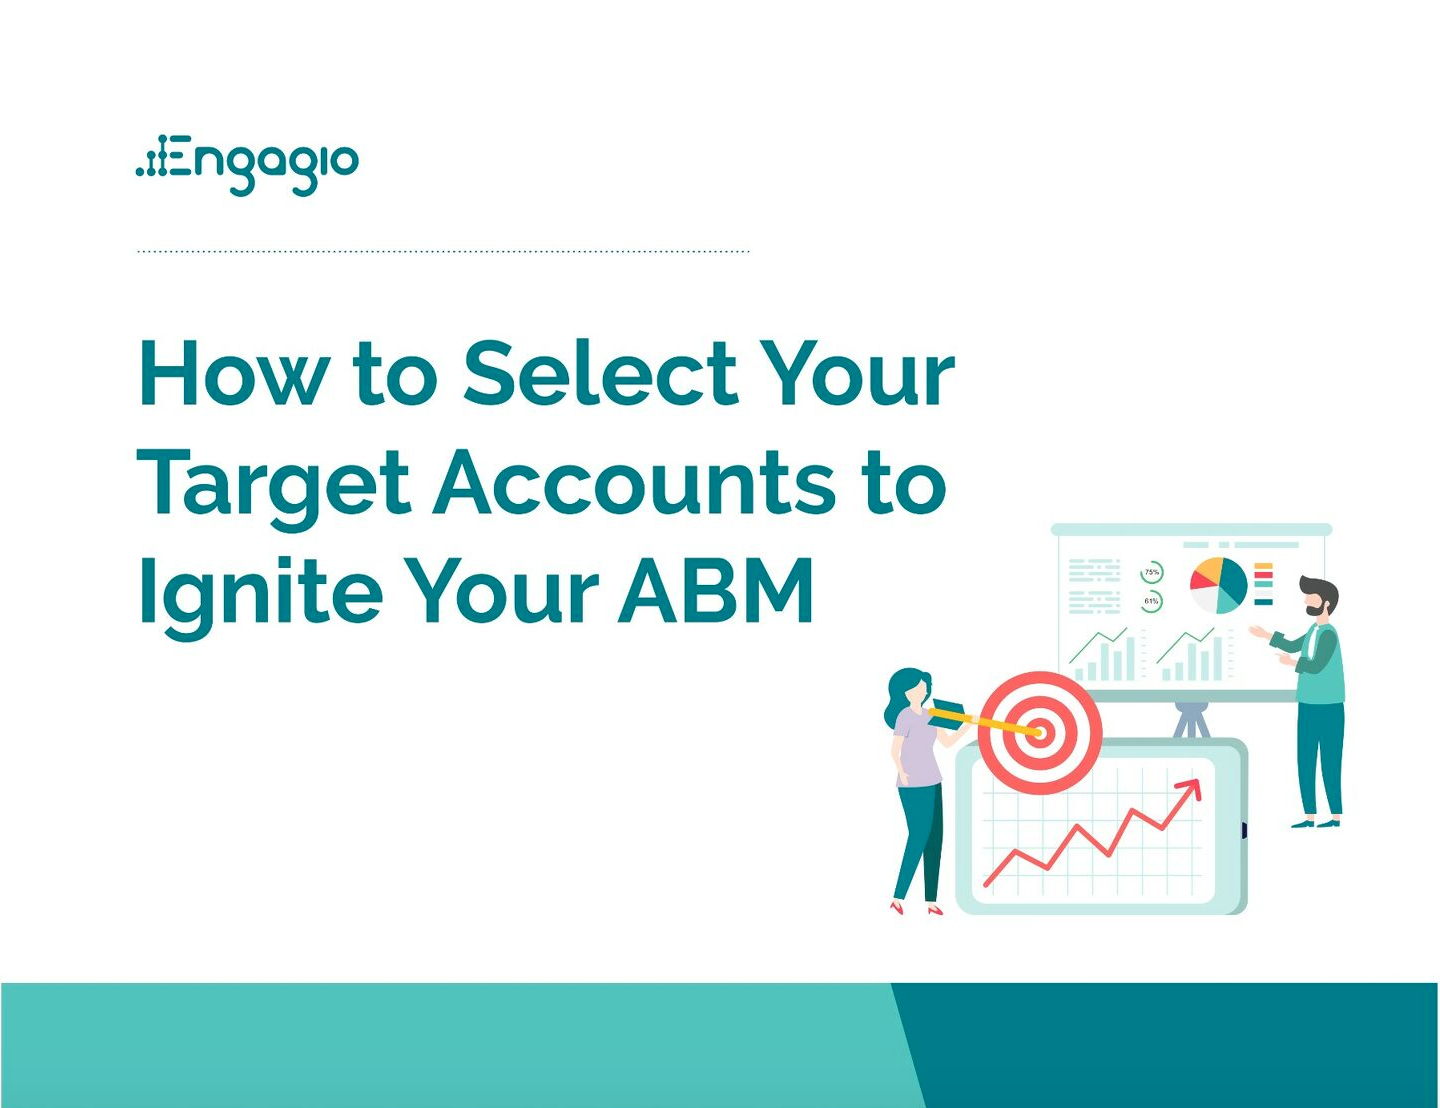 How to Select Your Target Accounts to Ignite Your ABM